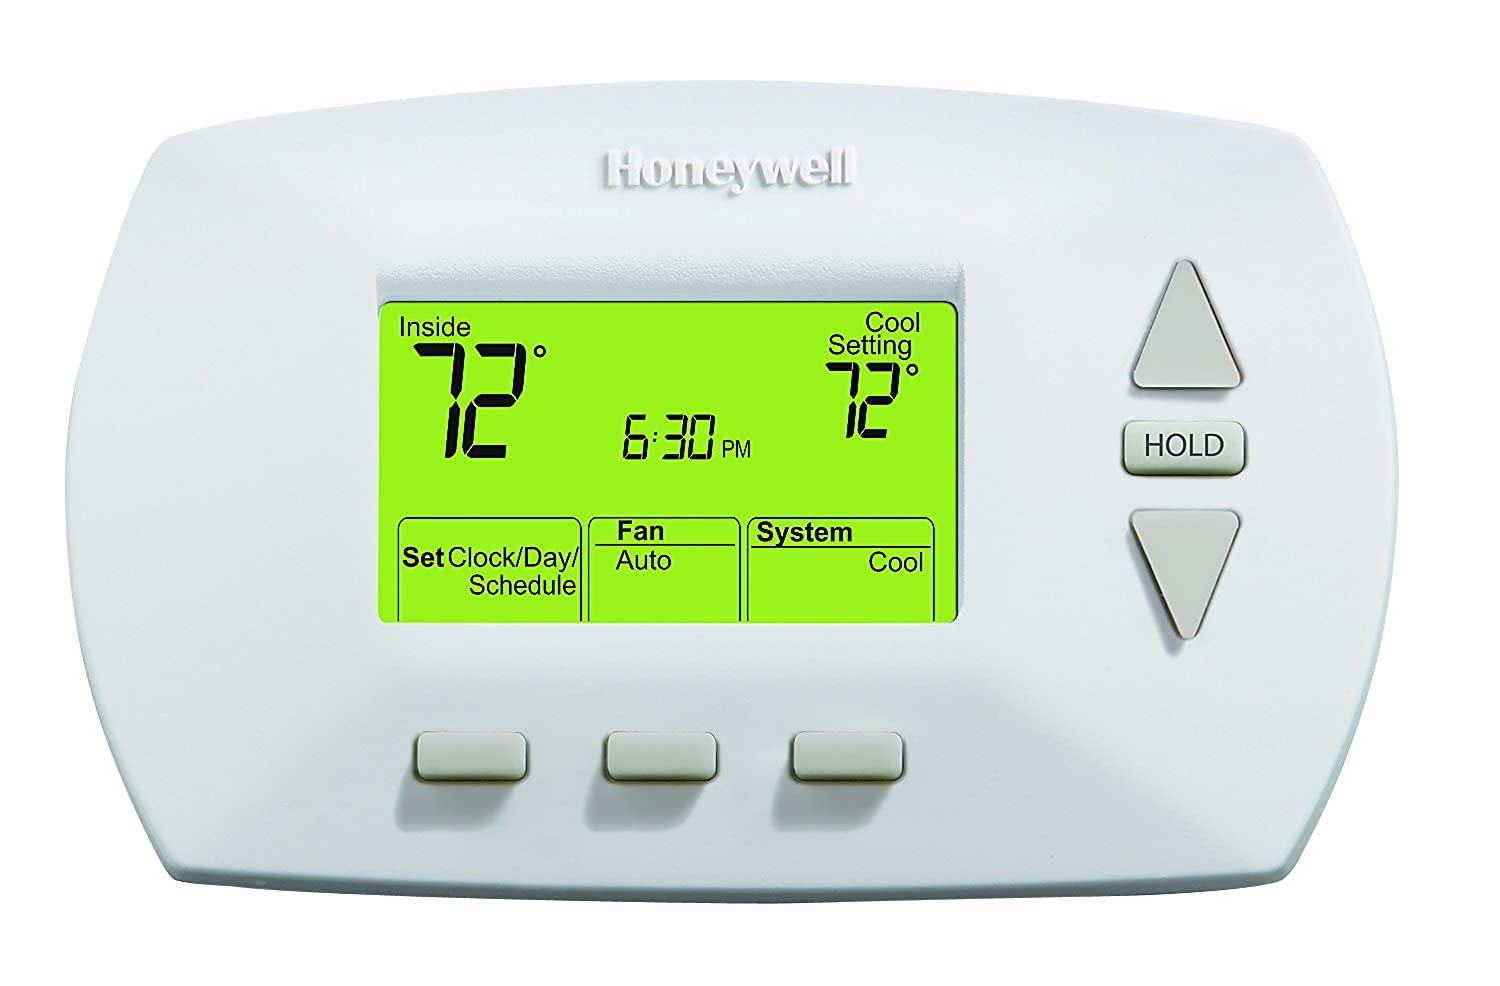 Honeywell Th6110d1005 Installation Manual User Guide That Honeywell Thermostat Troubleshooting Wiring Amazon Com Rth6450d1009 E1 5 1 Day Programmable Rh Thermostat